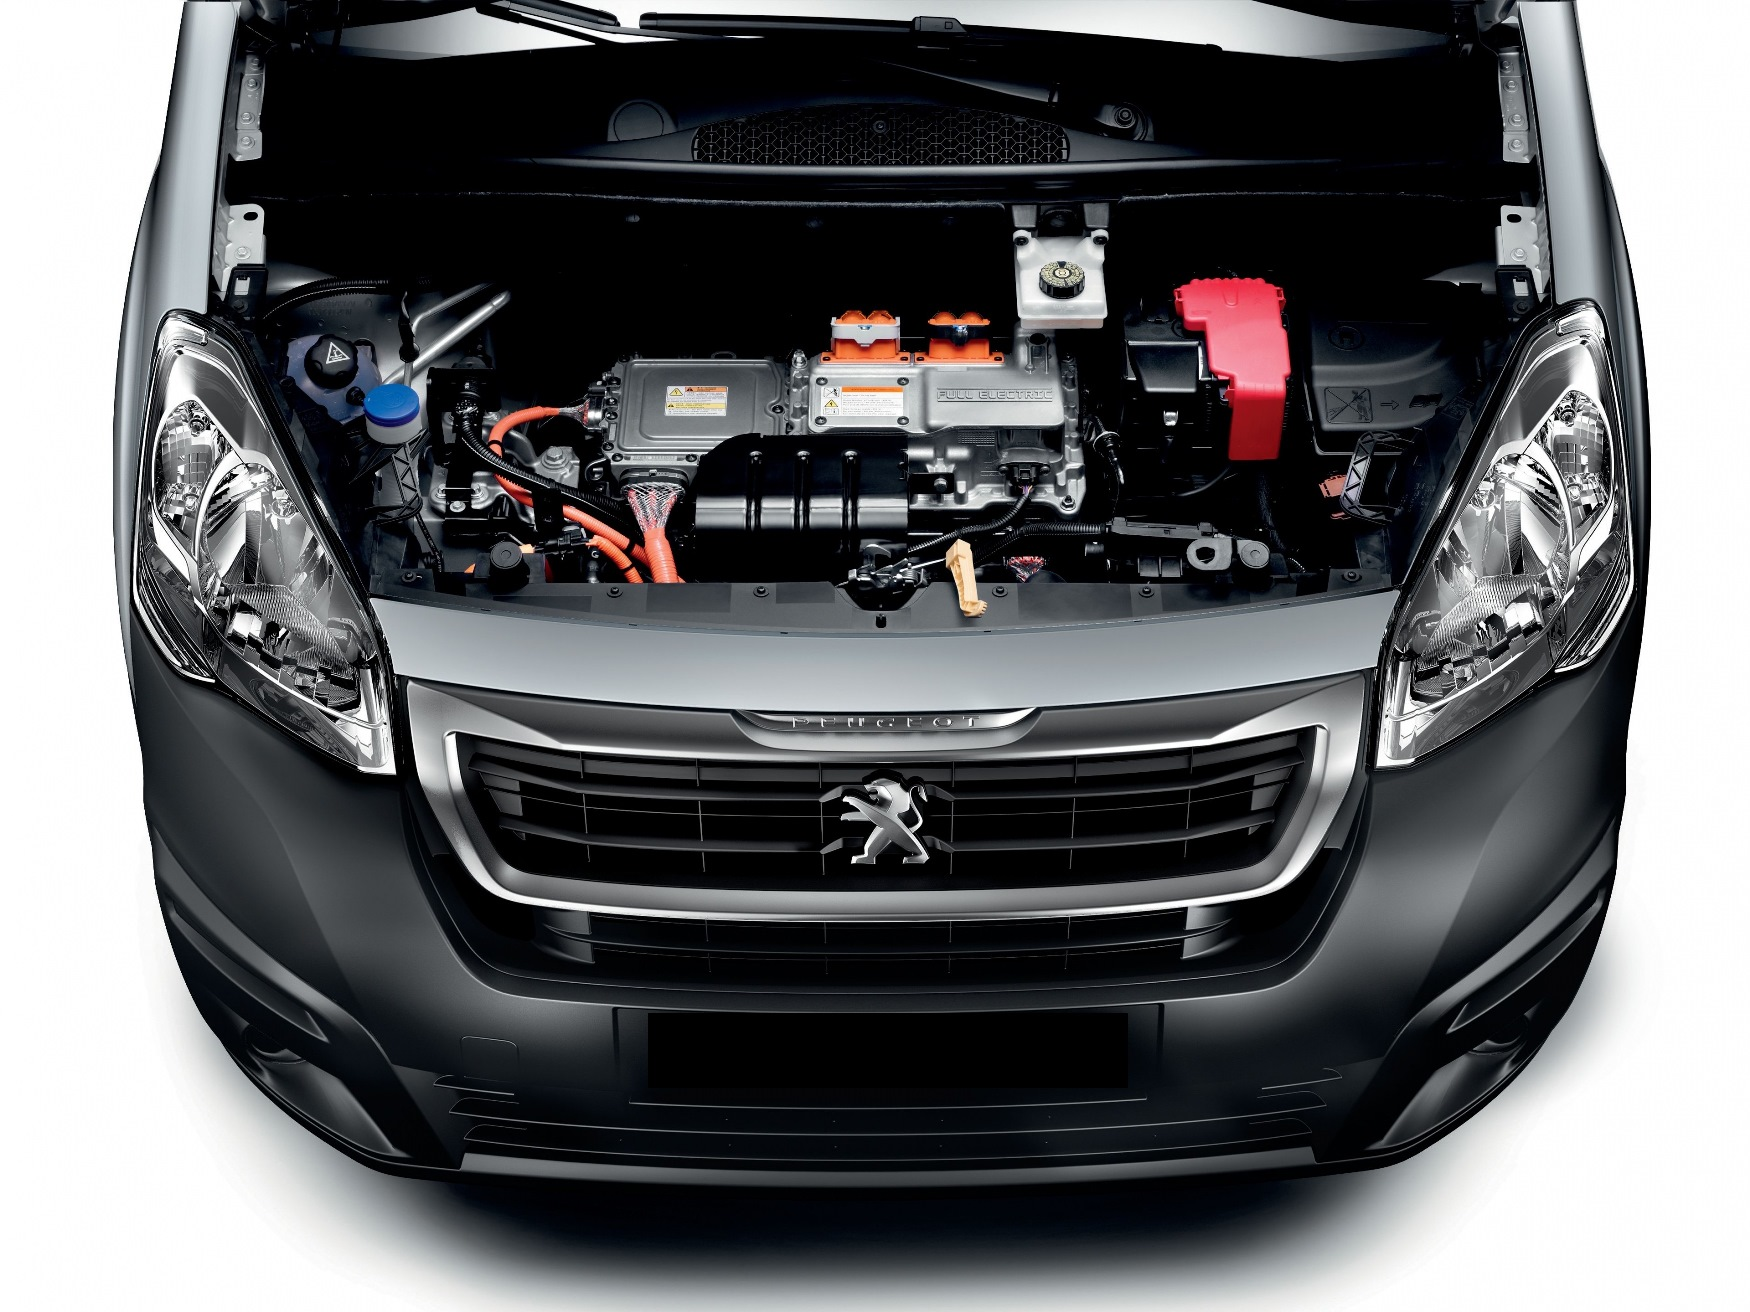 Postal workers to use Peugeot electric vans